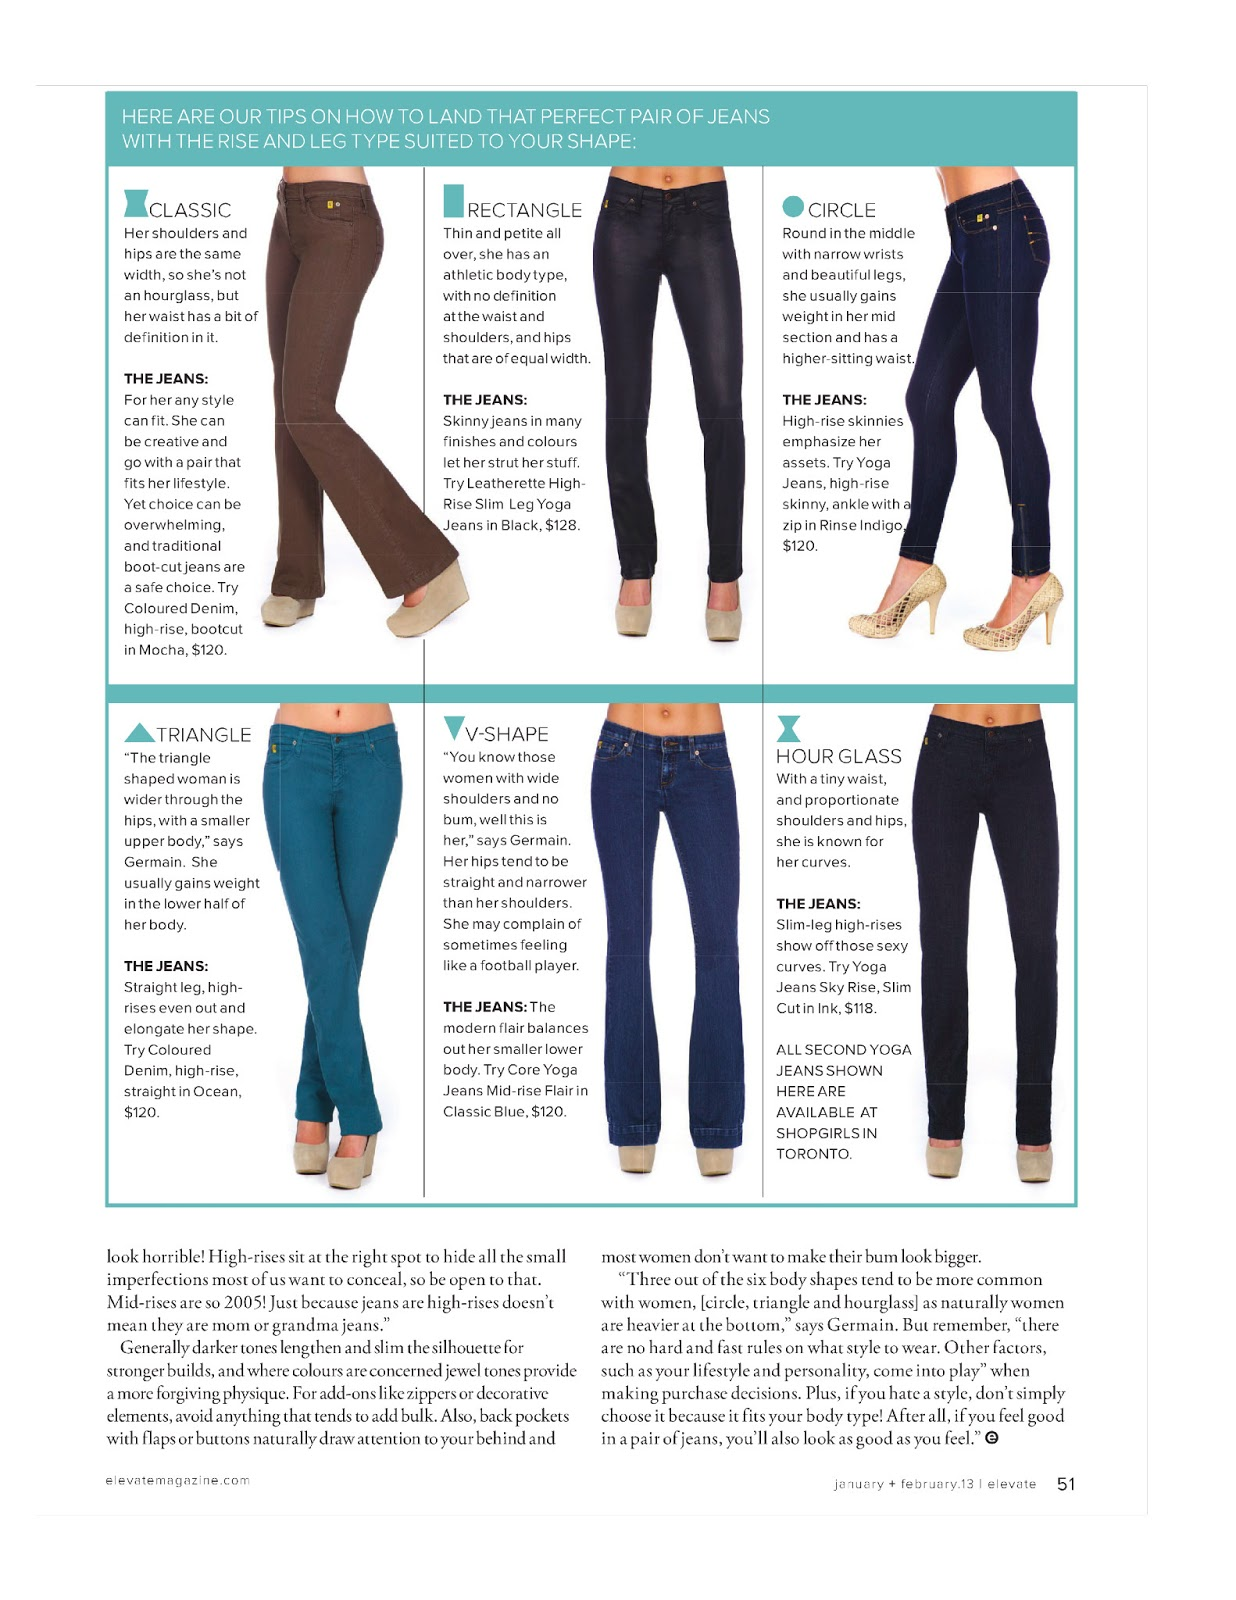 how to find jeans that fit your shape